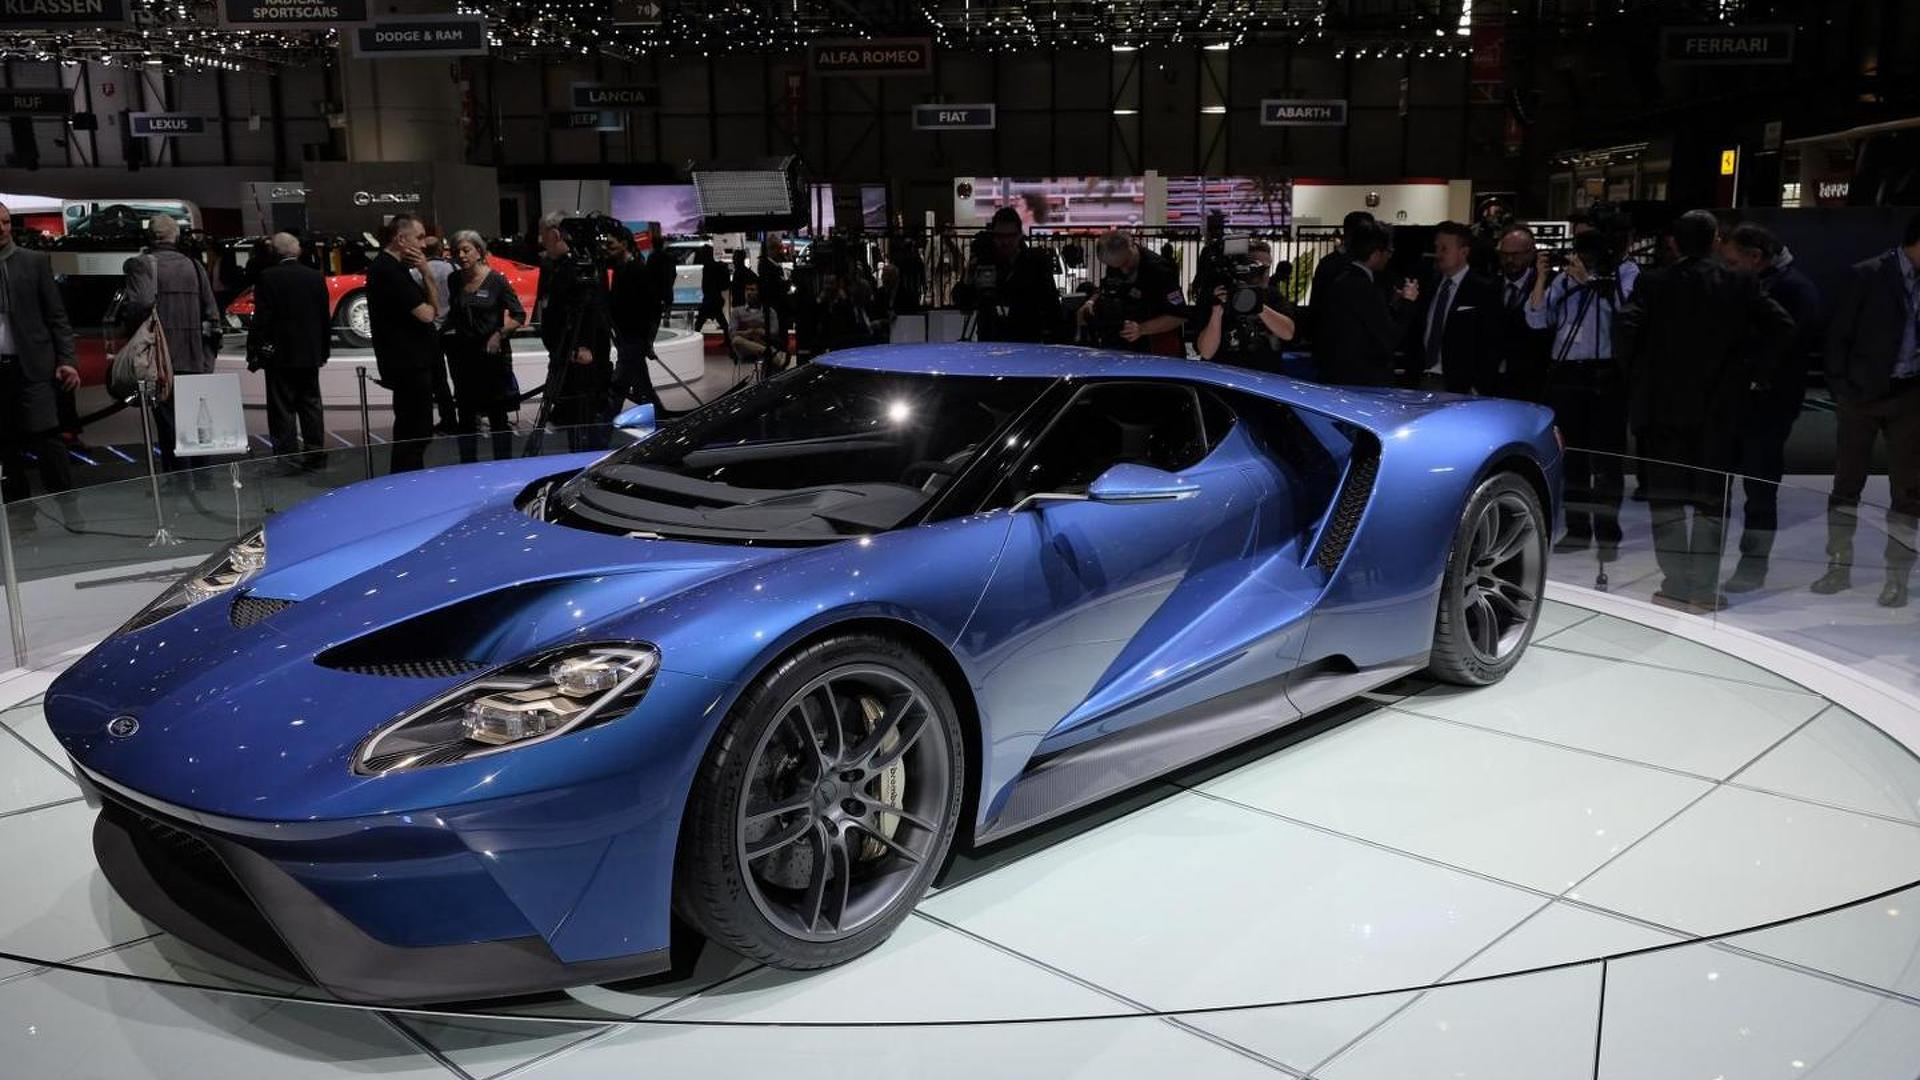 2017 ford gt to cost around 400000 annual production capped at 250 units